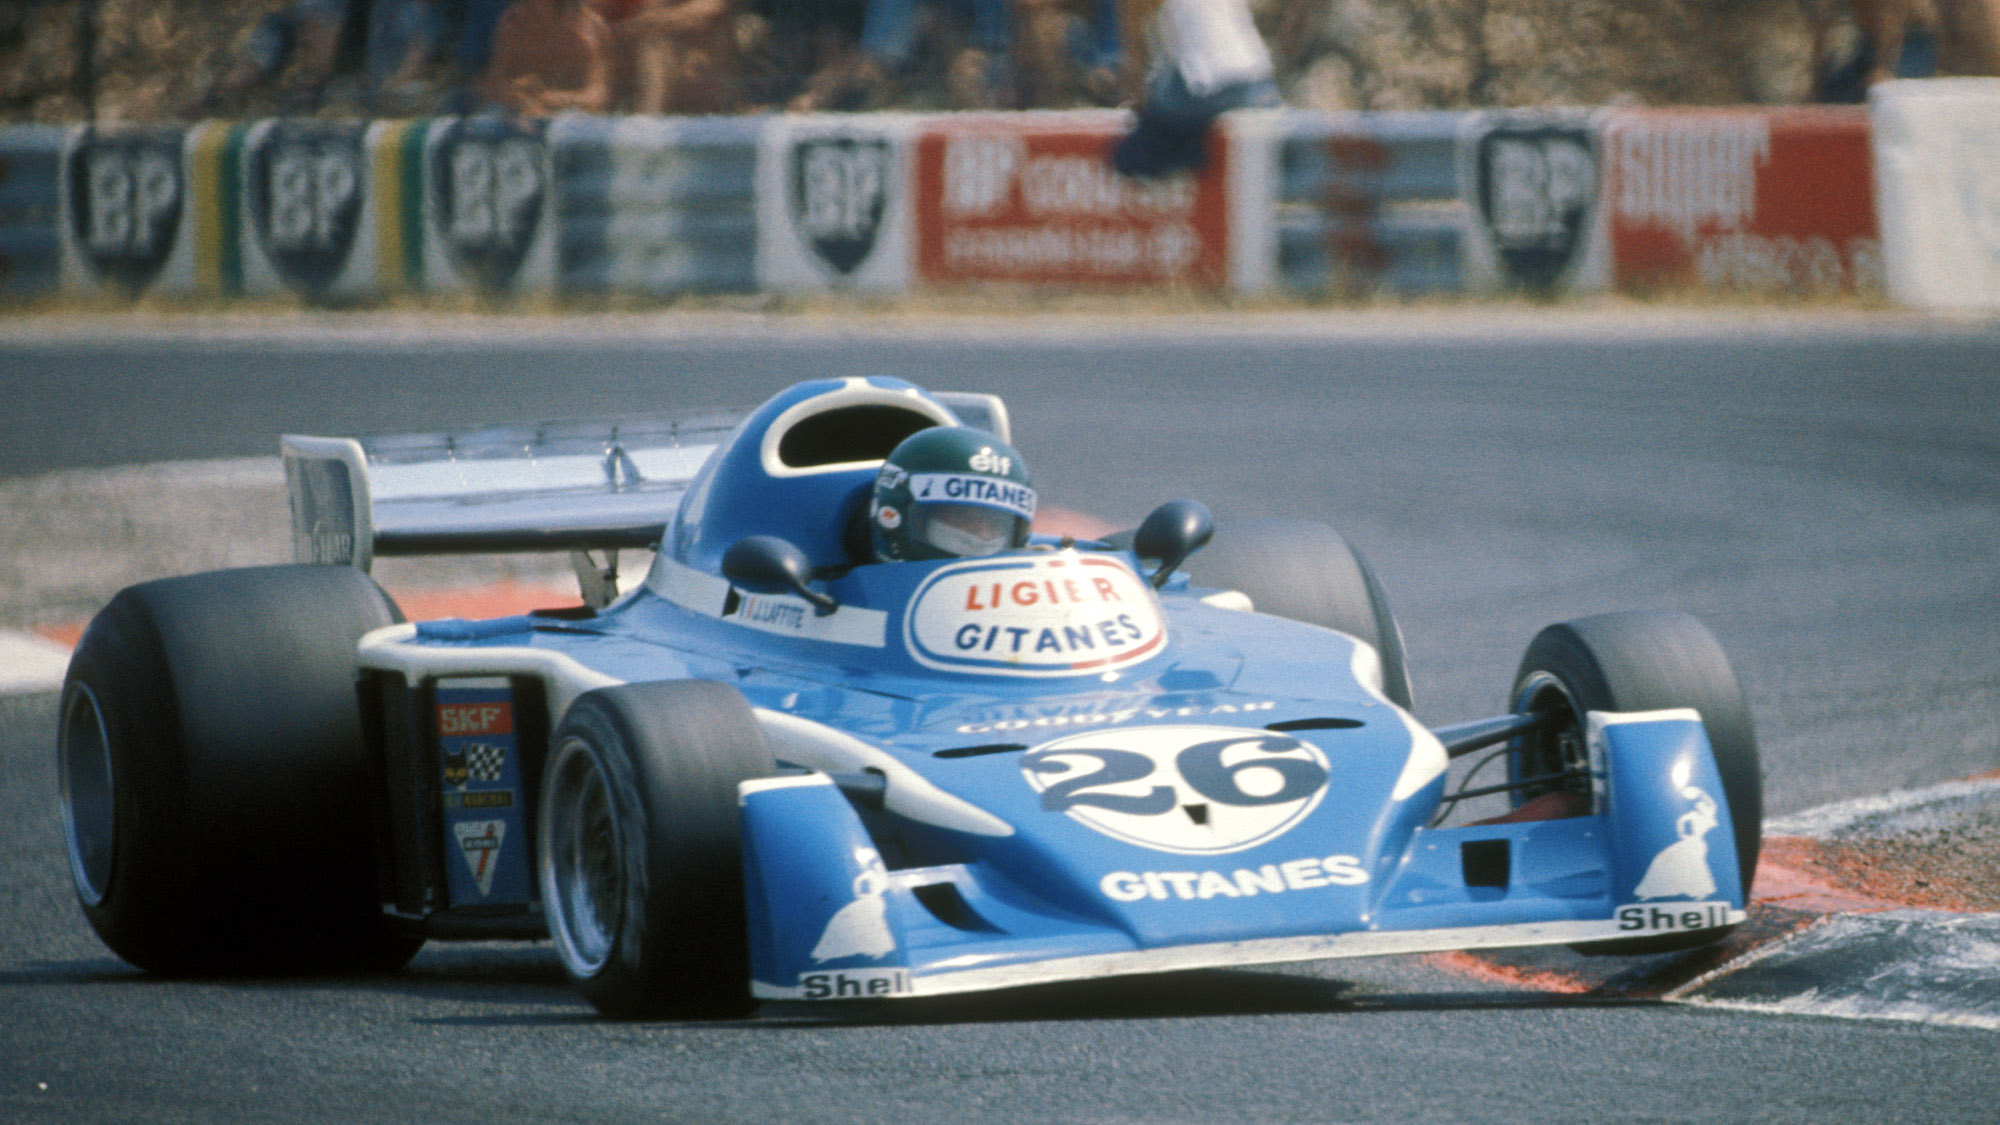 Jacques Laffite in the Liger Matra during the 1976 French Grand Prix at Paul Ricard